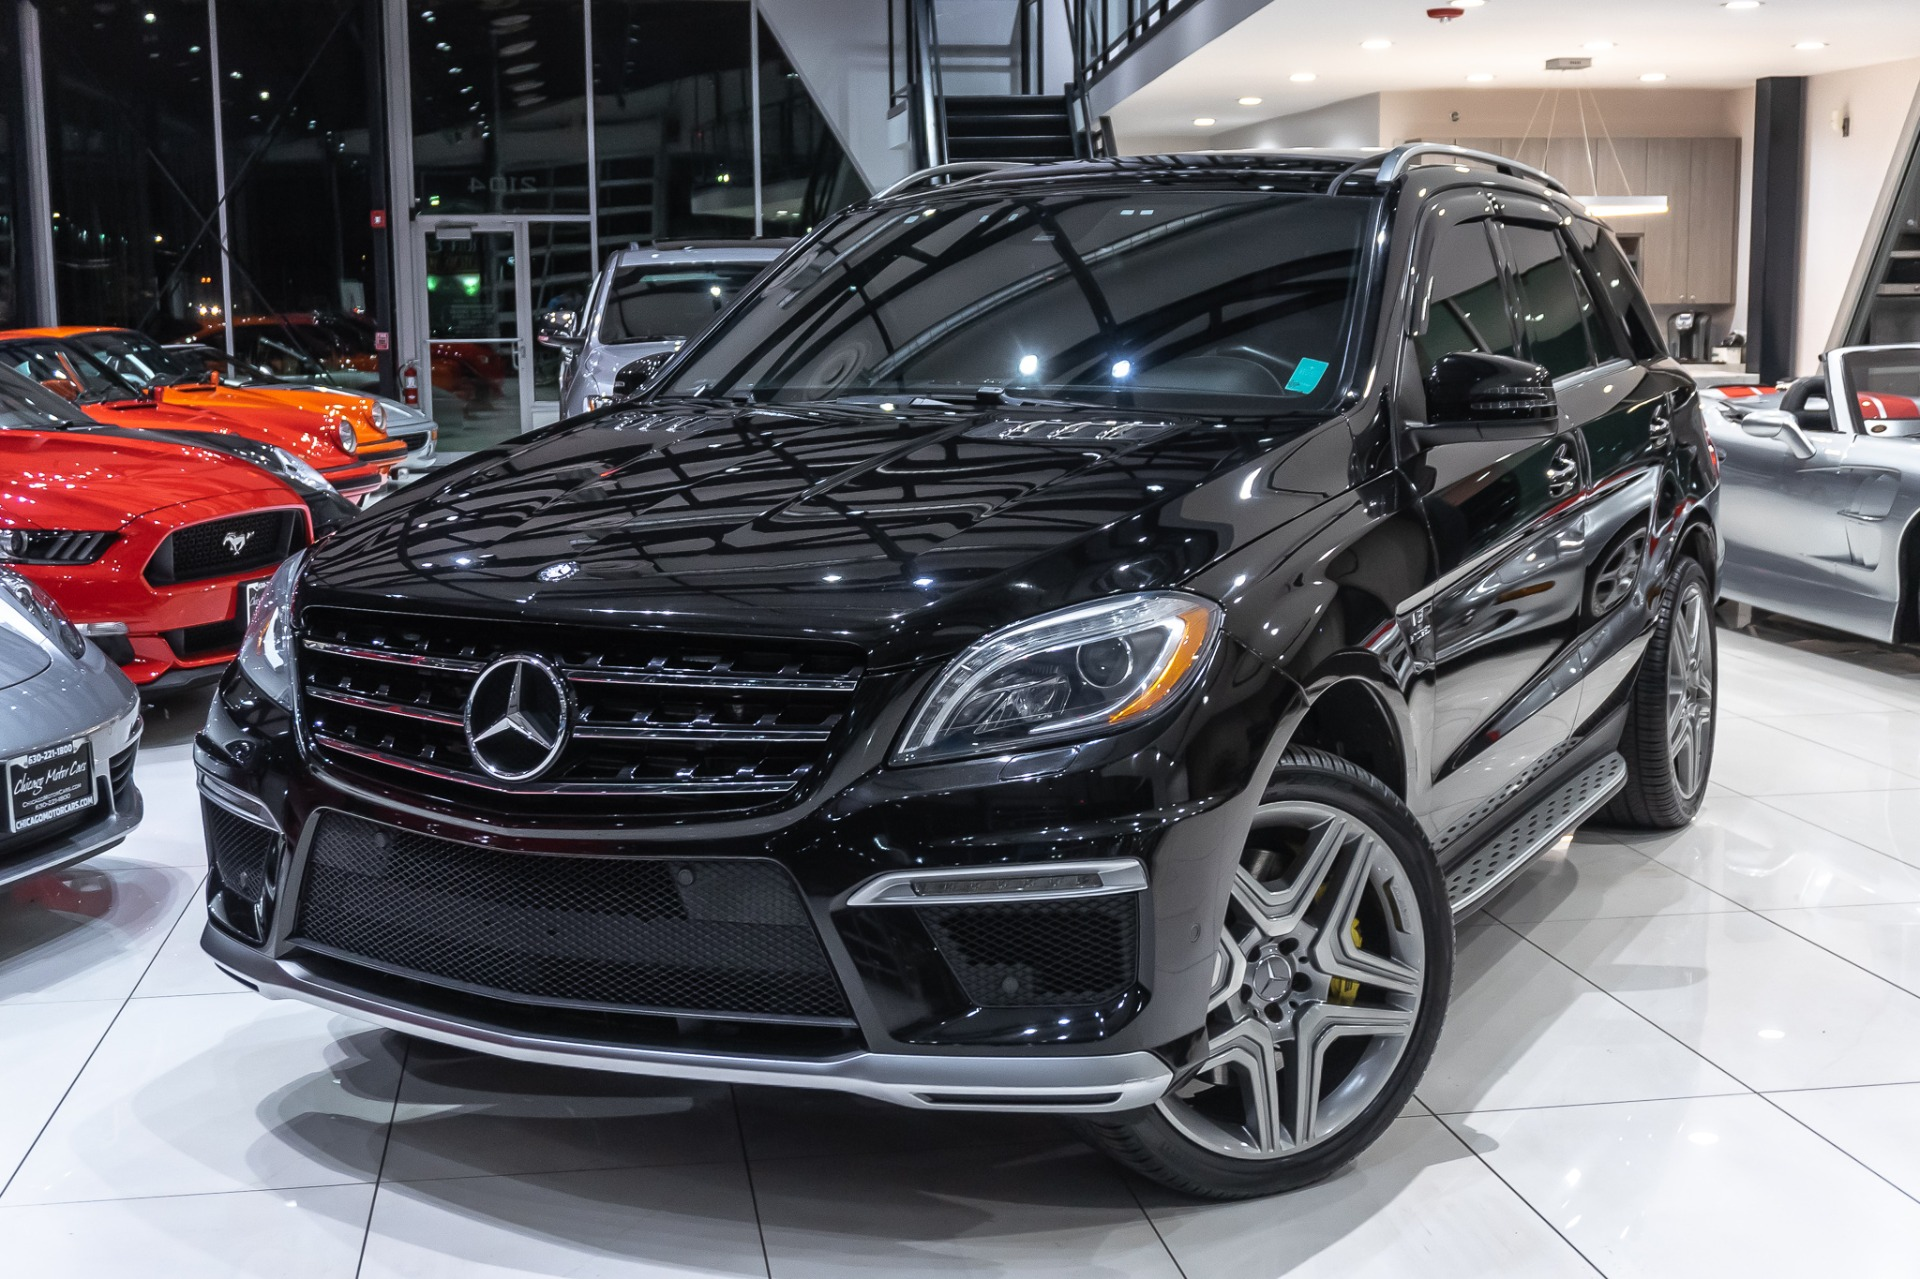 Used-2013-Mercedes-Benz-ML63-AMG-SUV-P3-PERFORMANCE-PKG-DRIVER-ASSIST-LANE-TRACK-PANO-RECENT-SERVICE